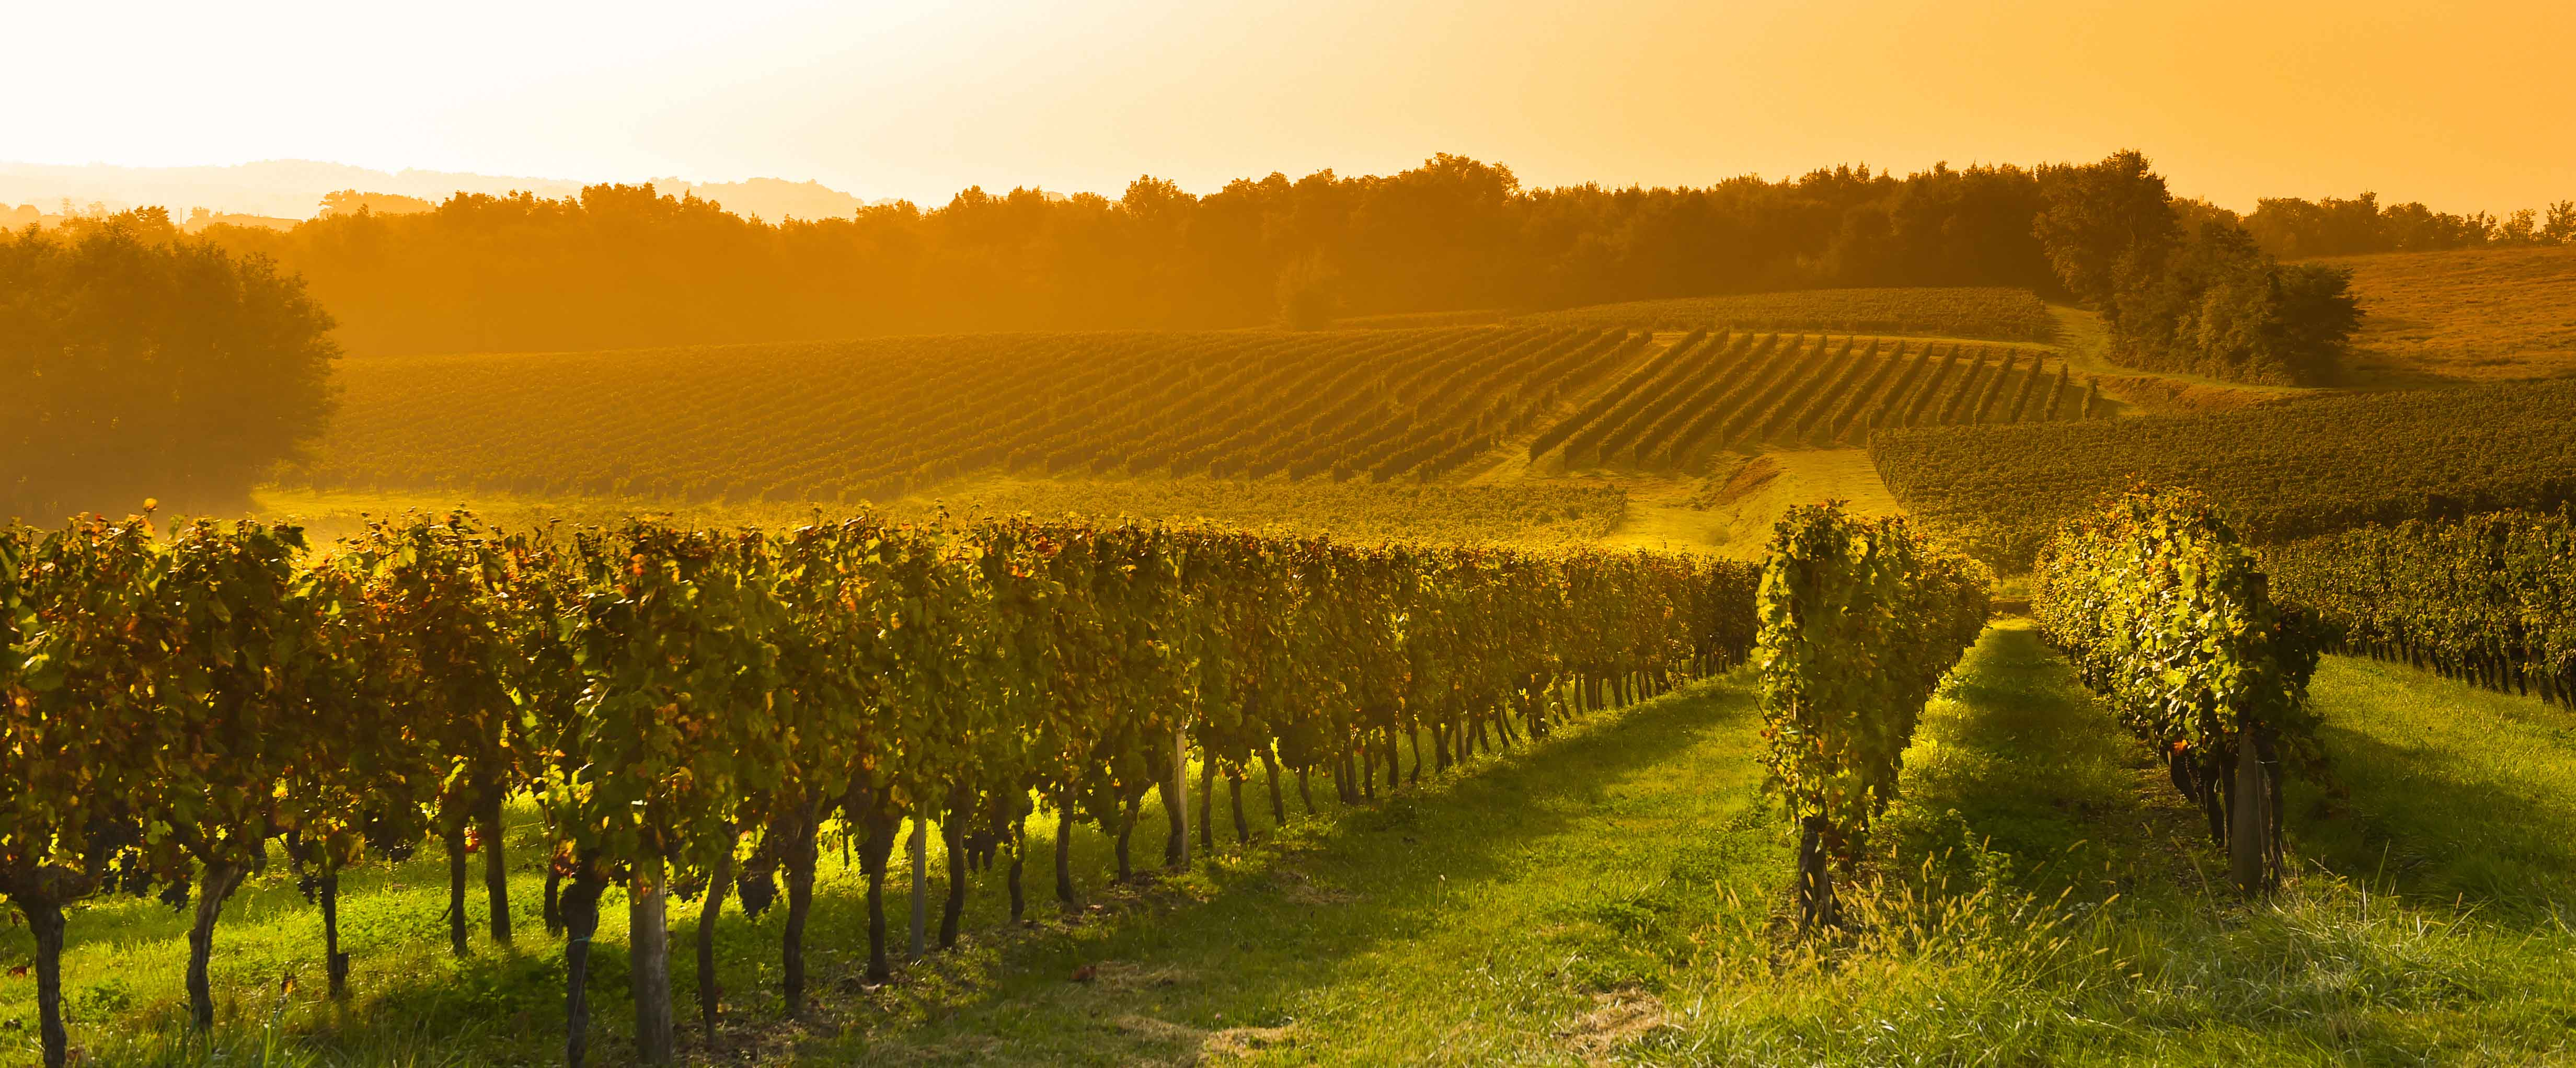 France's largest wine-growing region, Bordeaux's 126,000 hectares of vineyards yield roughly 700 million bottles of wine each year.